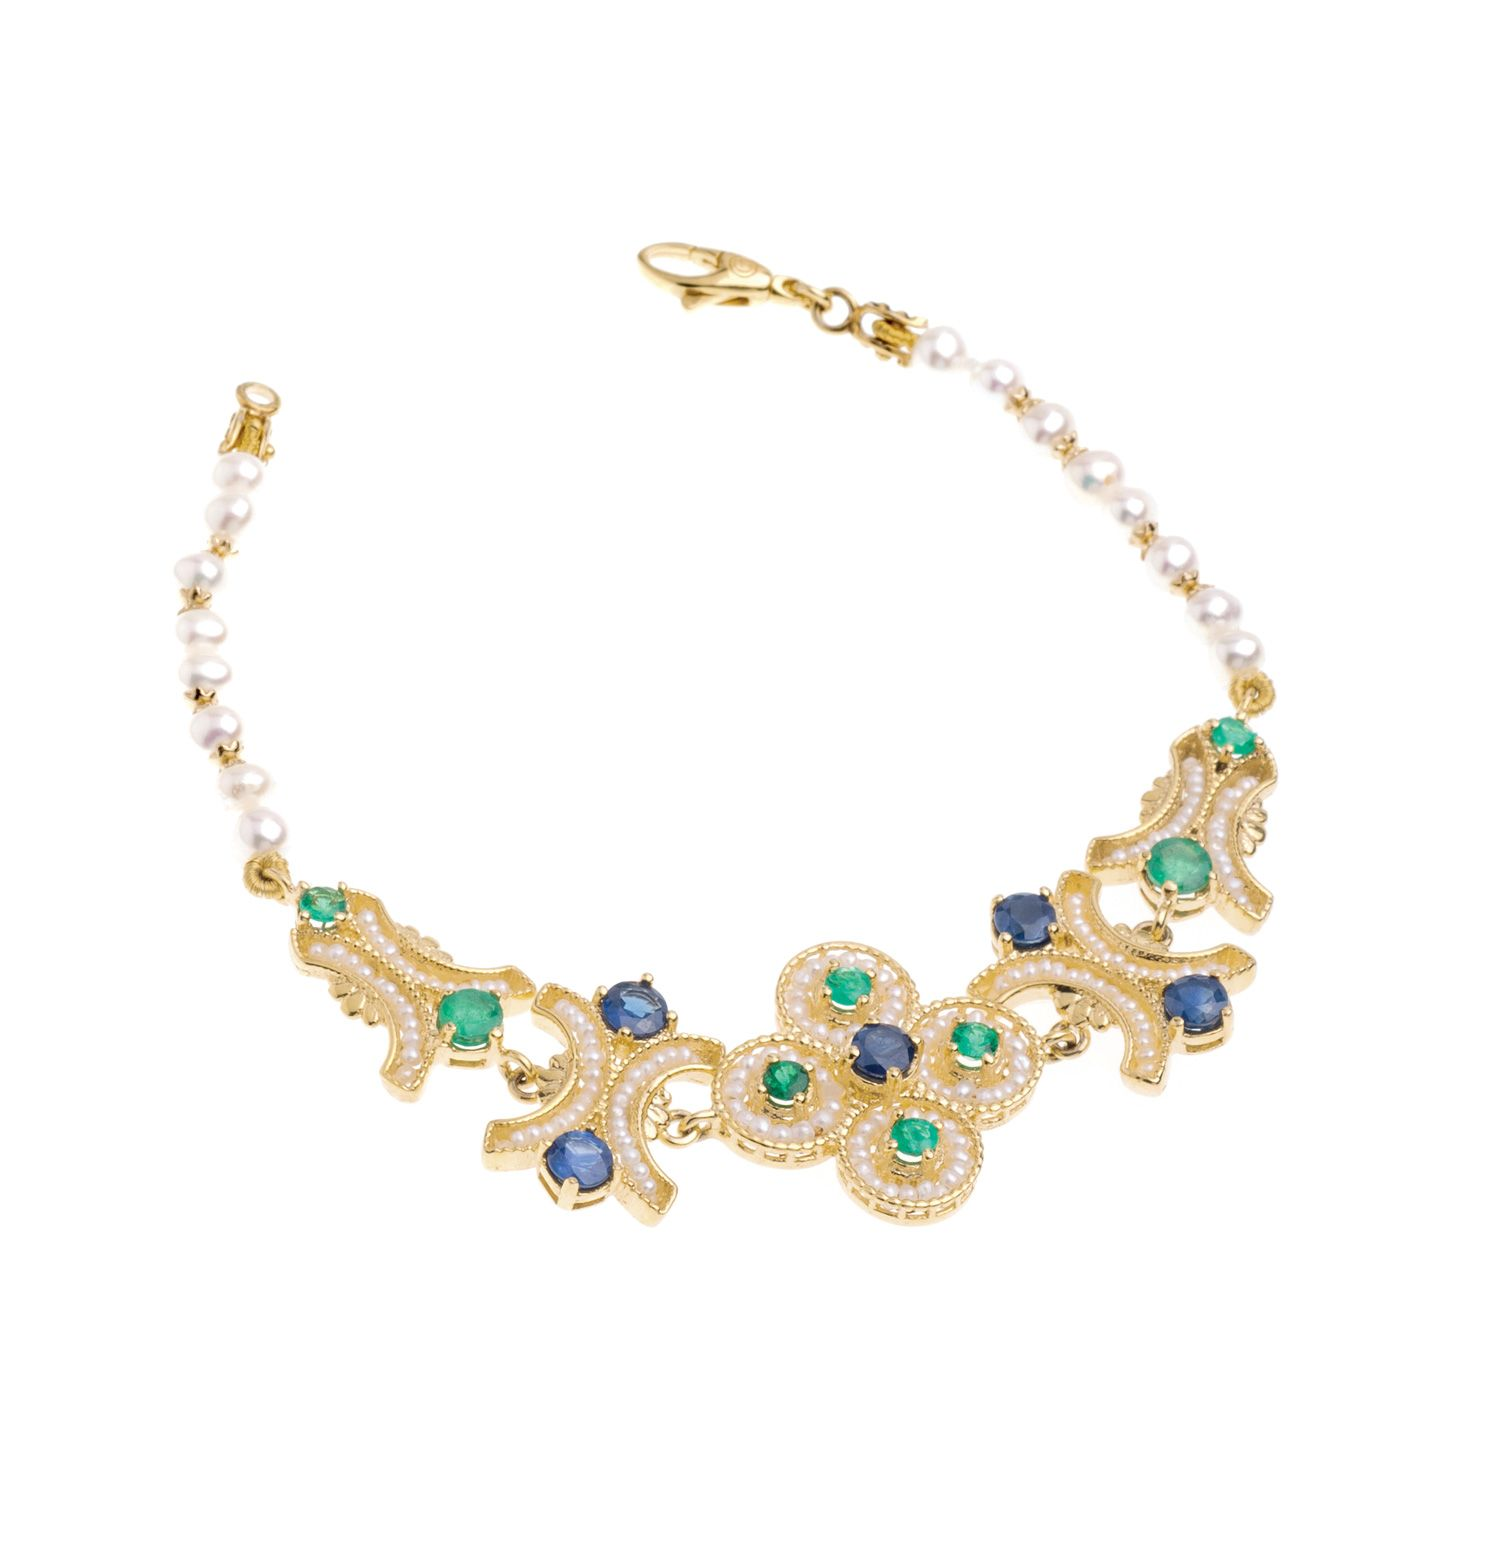 Gold Bracelet with Pearls and precious Stones (14239)